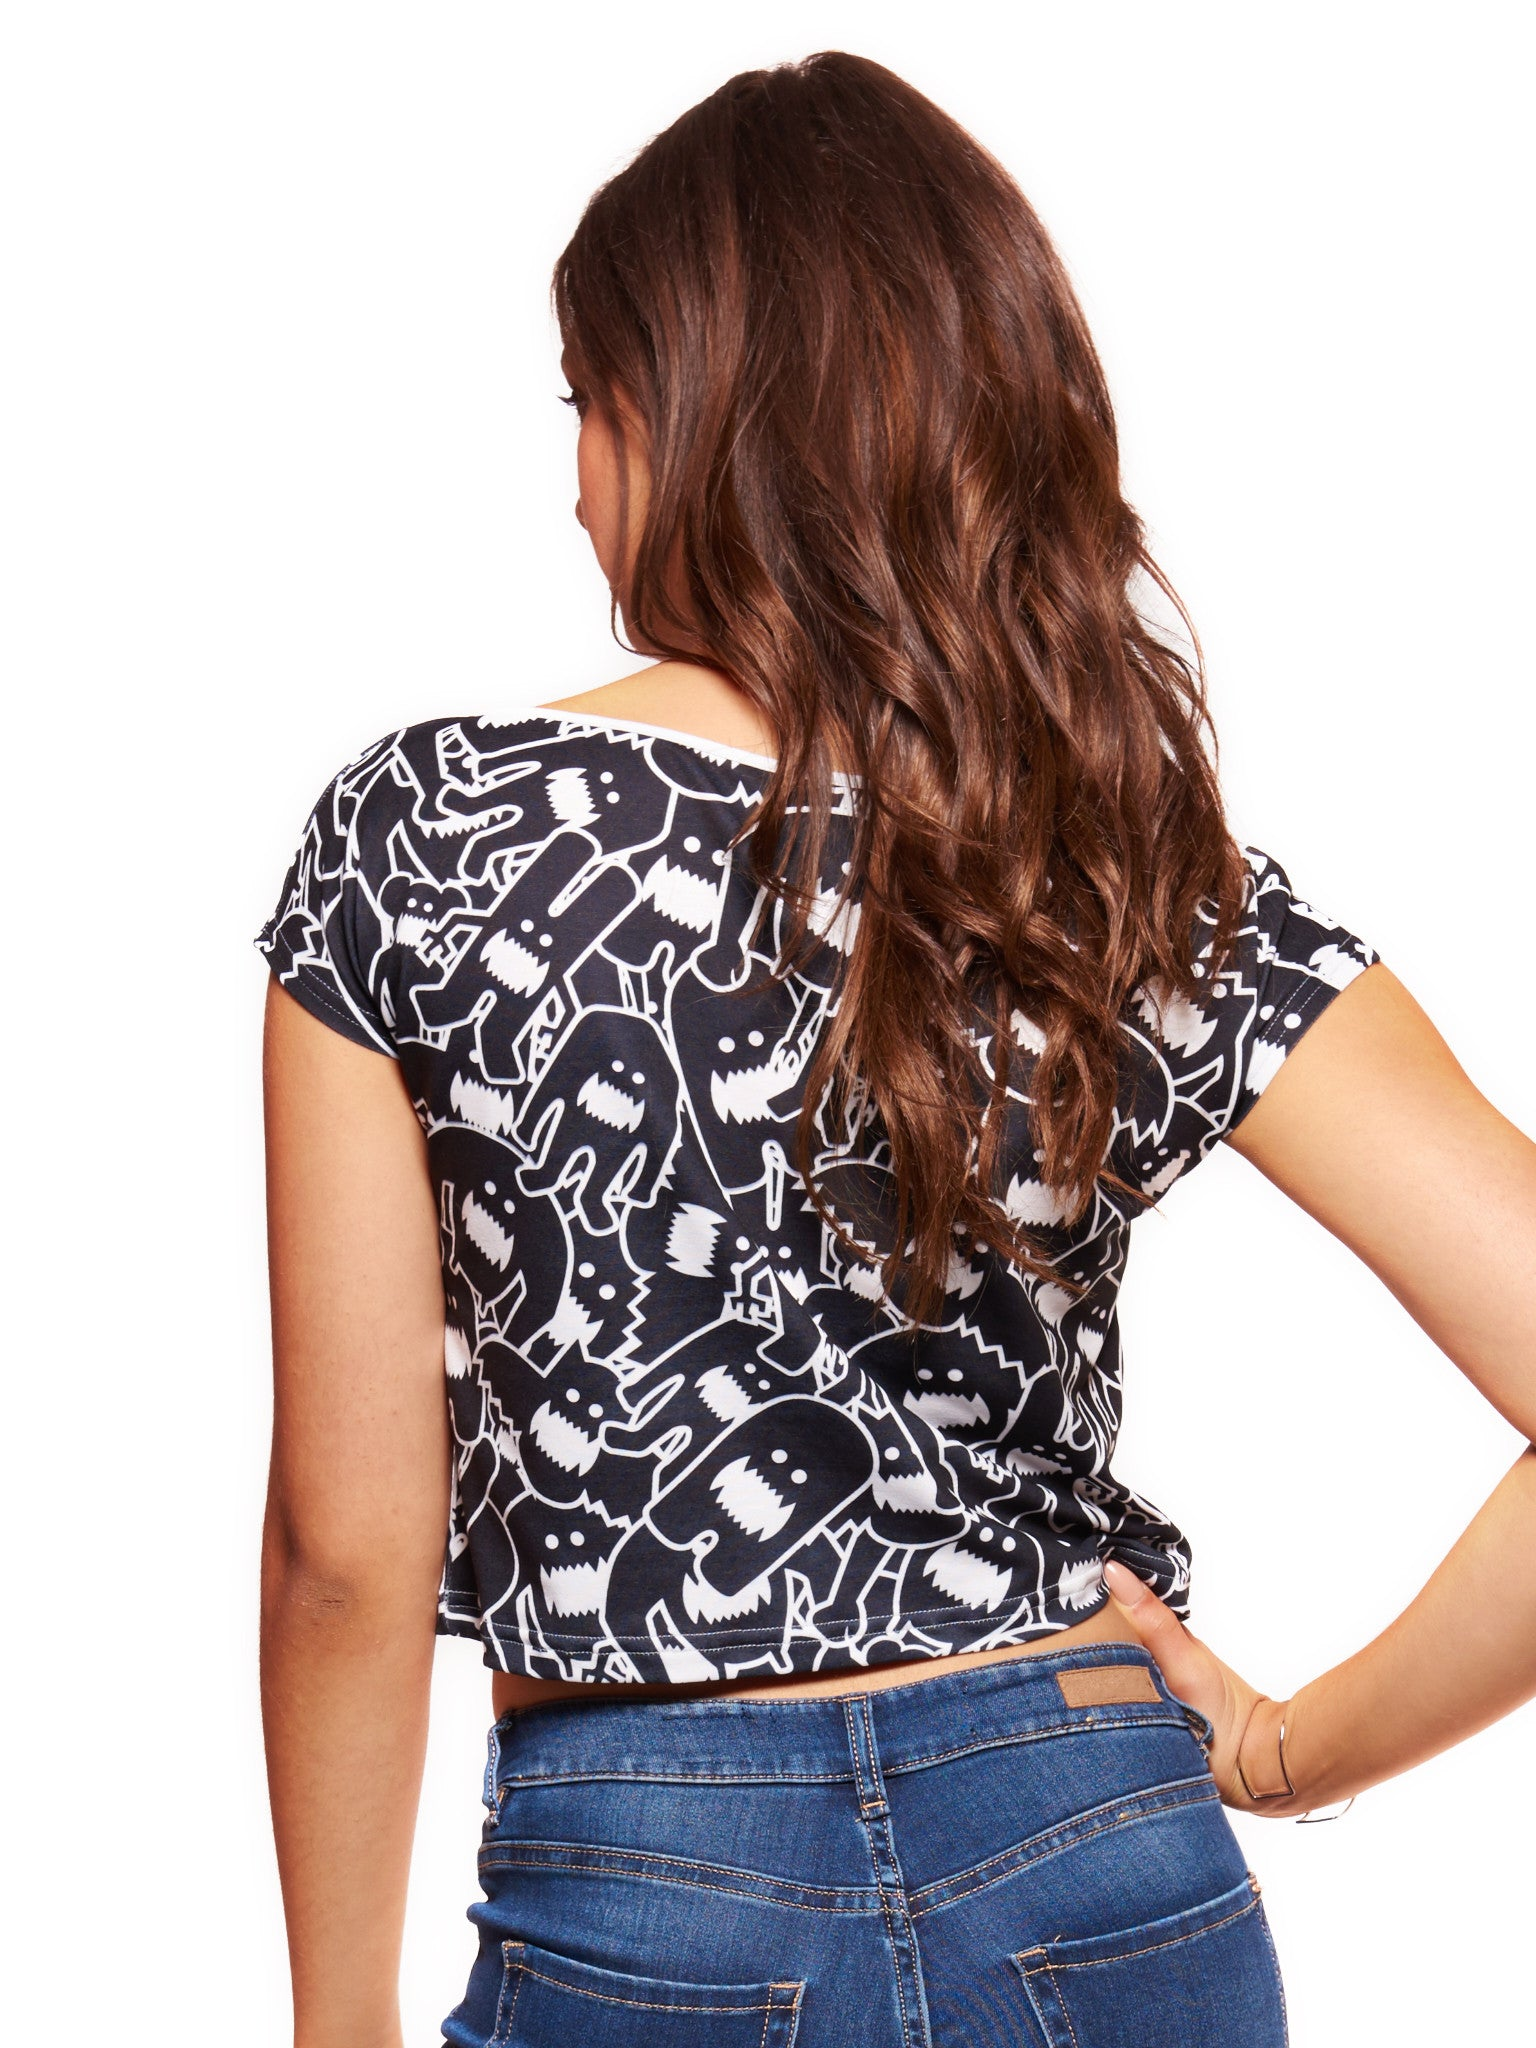 Monster Collage 2 Women's Crop Top - Nuvango  - 2